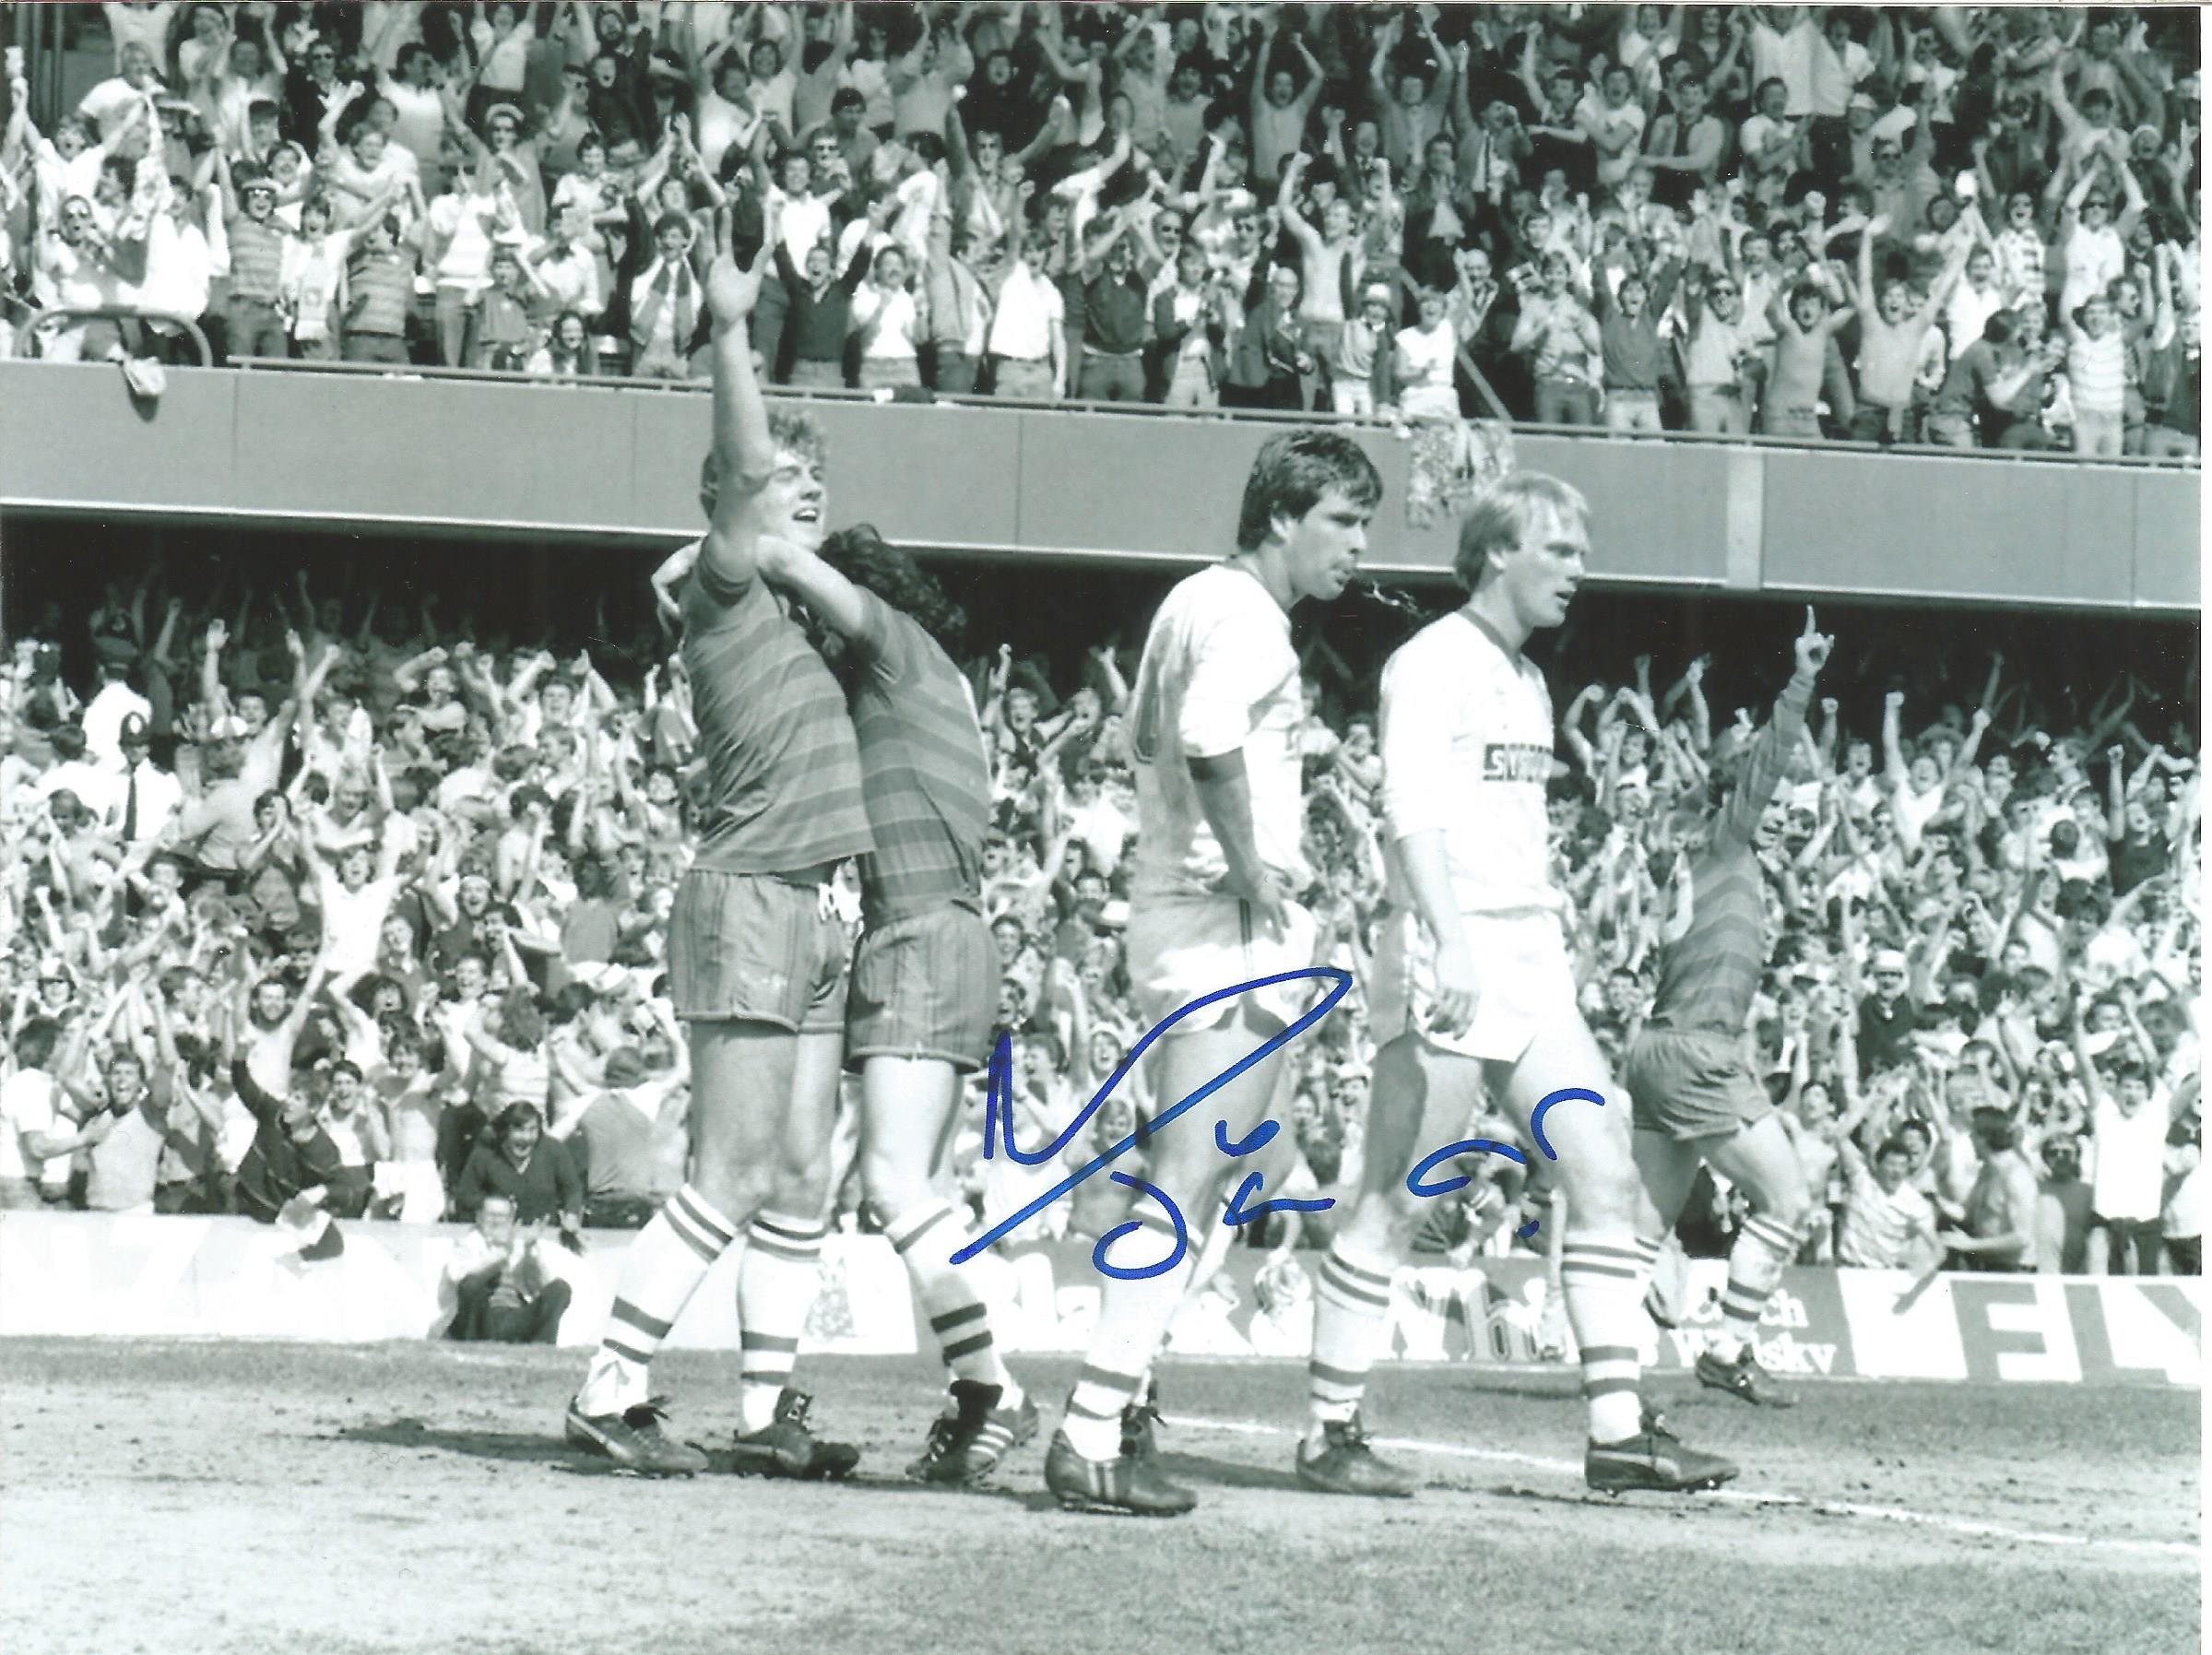 Football Autographed Chelsea 8 X 6 Photos Col & B/W, A Lot Of 8 Signed Photos Of Players From The - Image 2 of 4